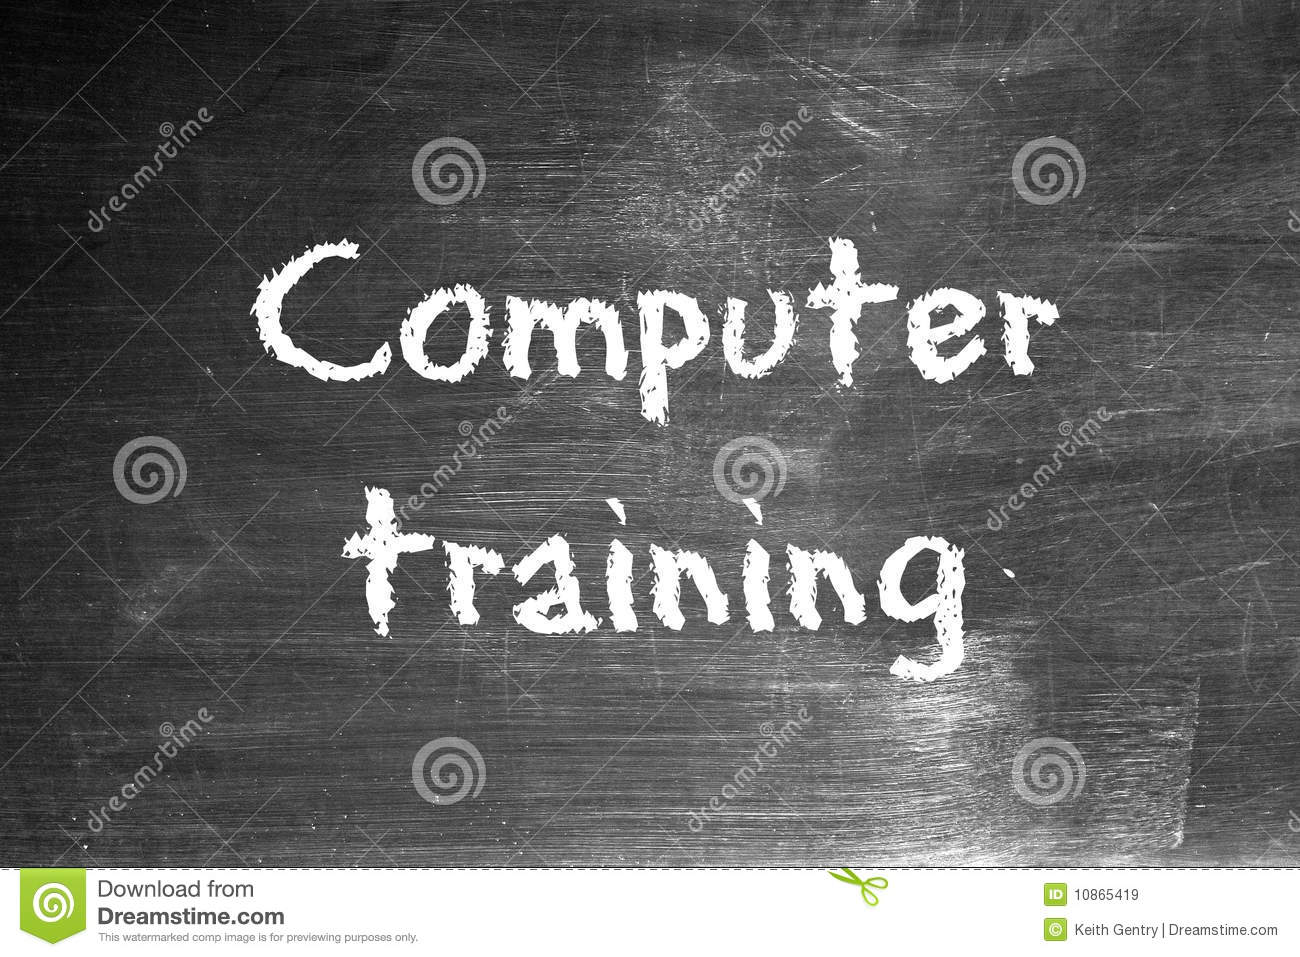 Computer training stock illustration  Illustration of blackboard